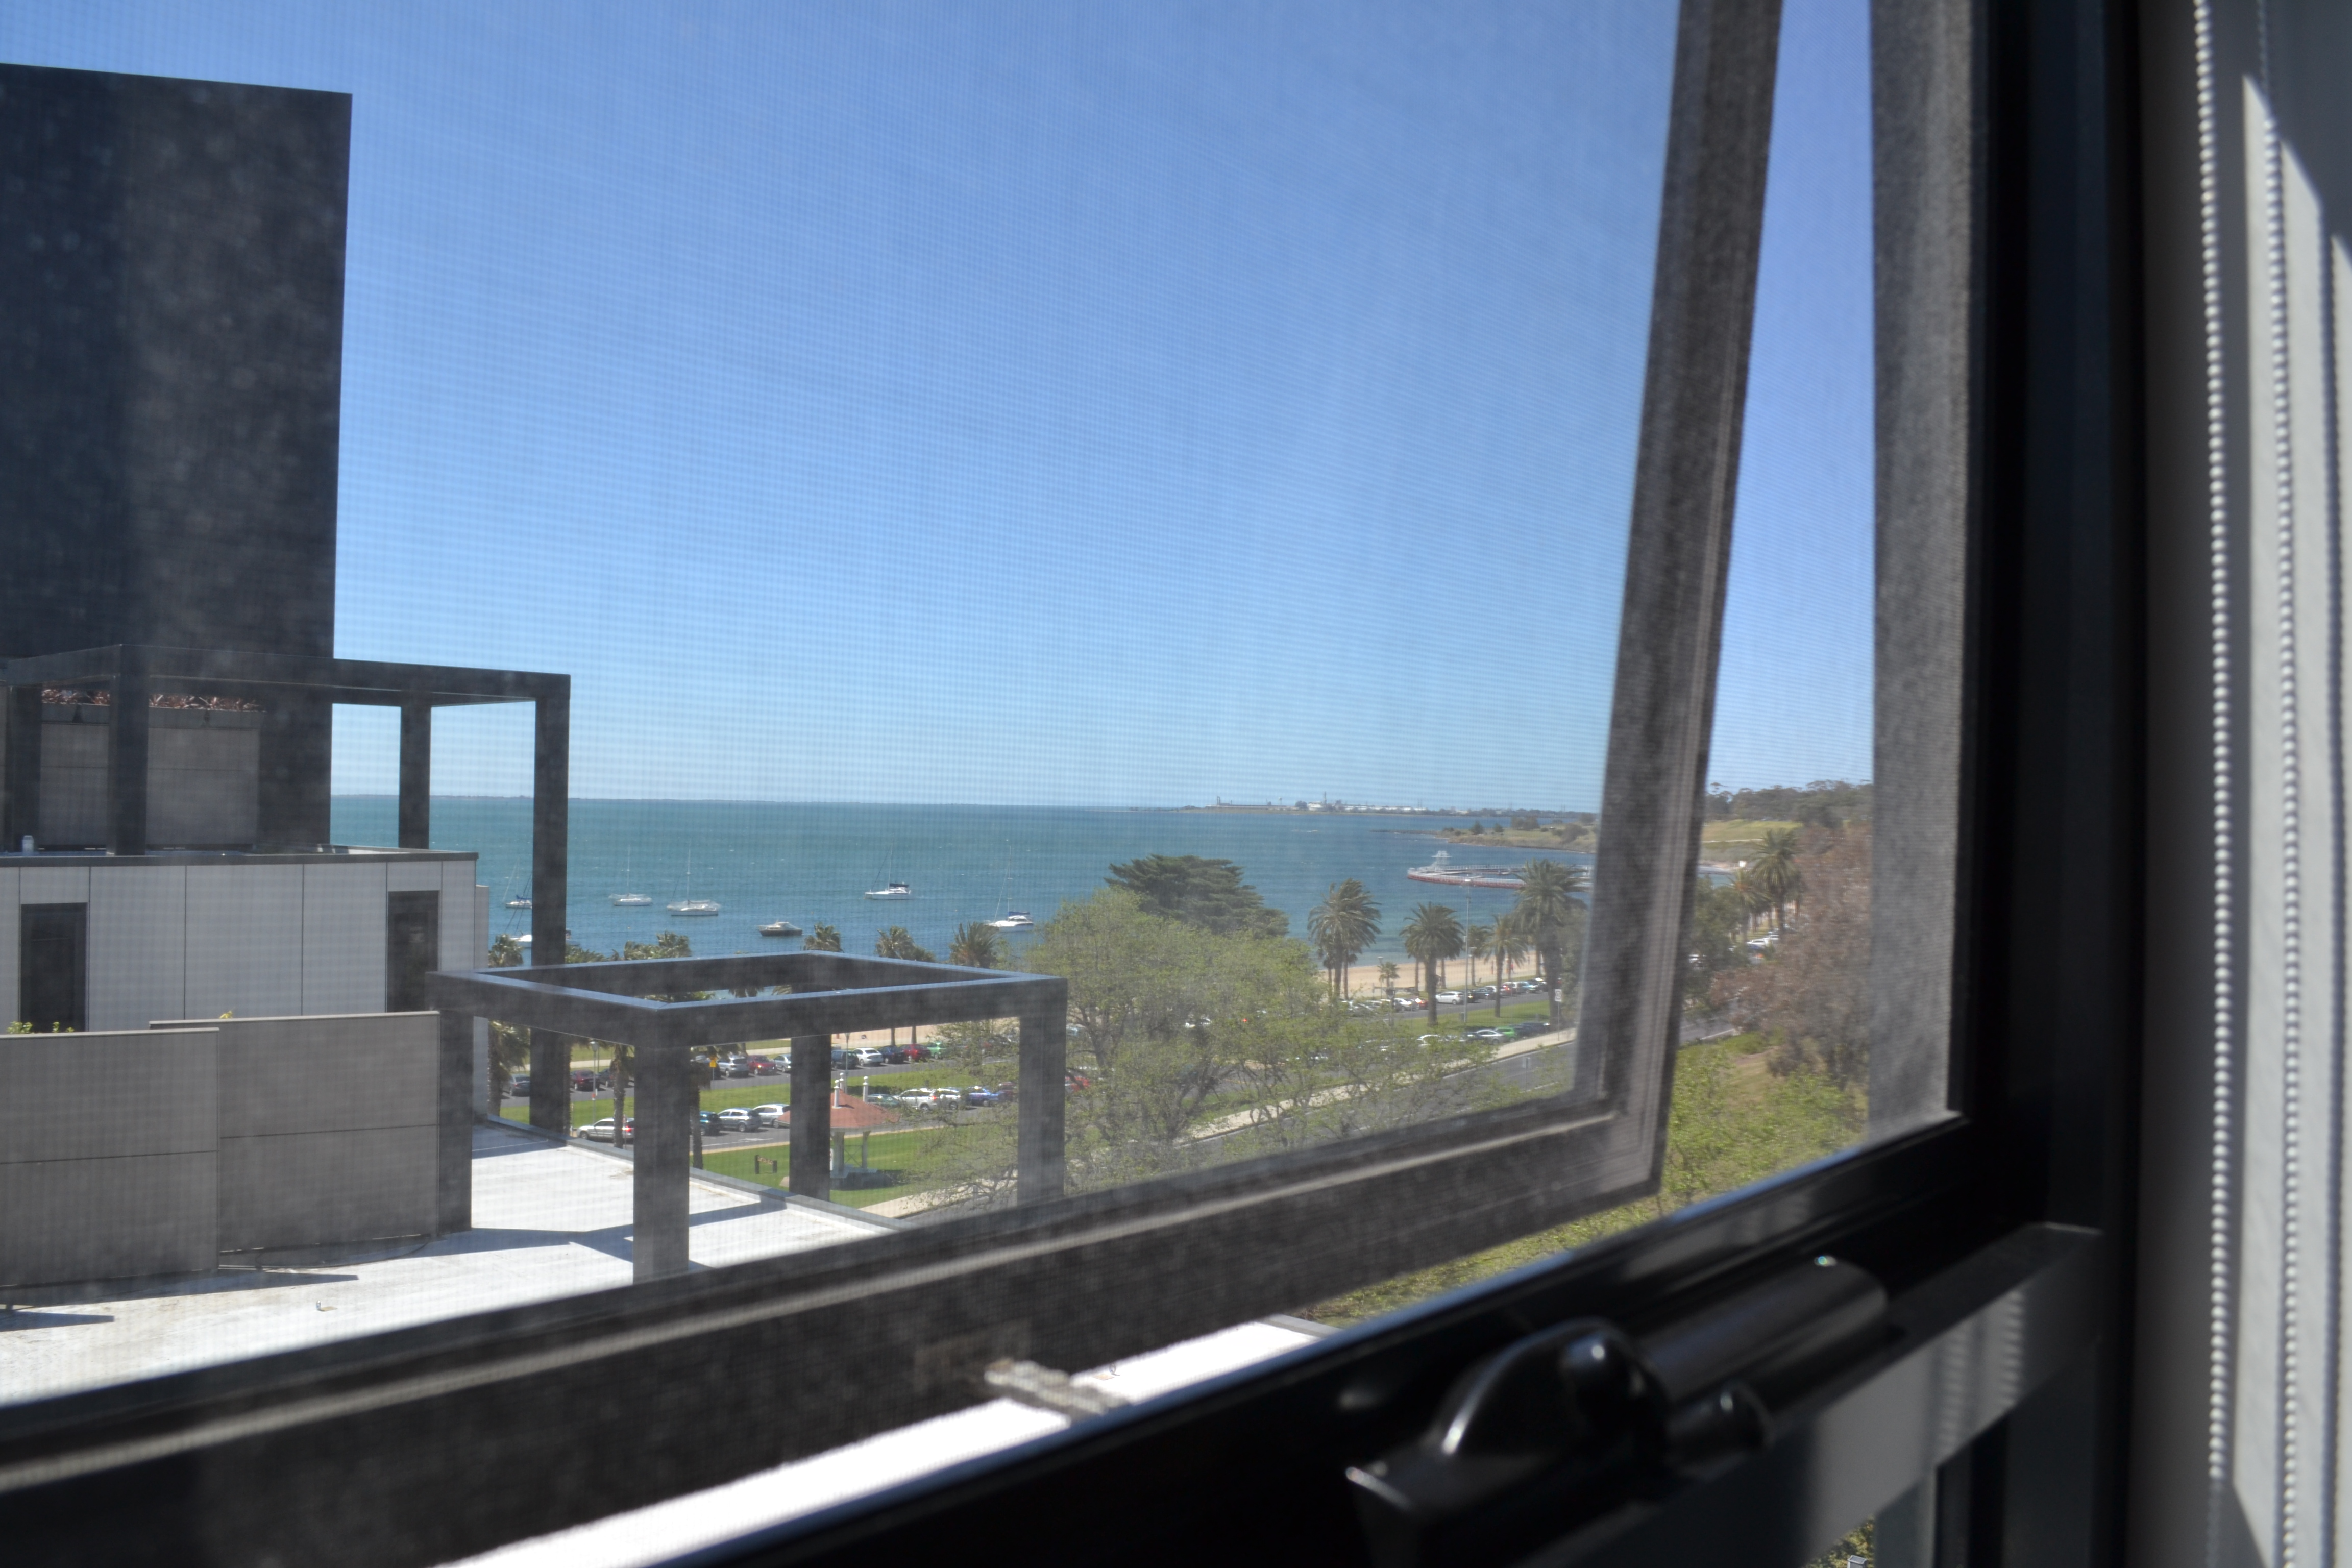 Geelong | Leanne's delicious food and travel adventures